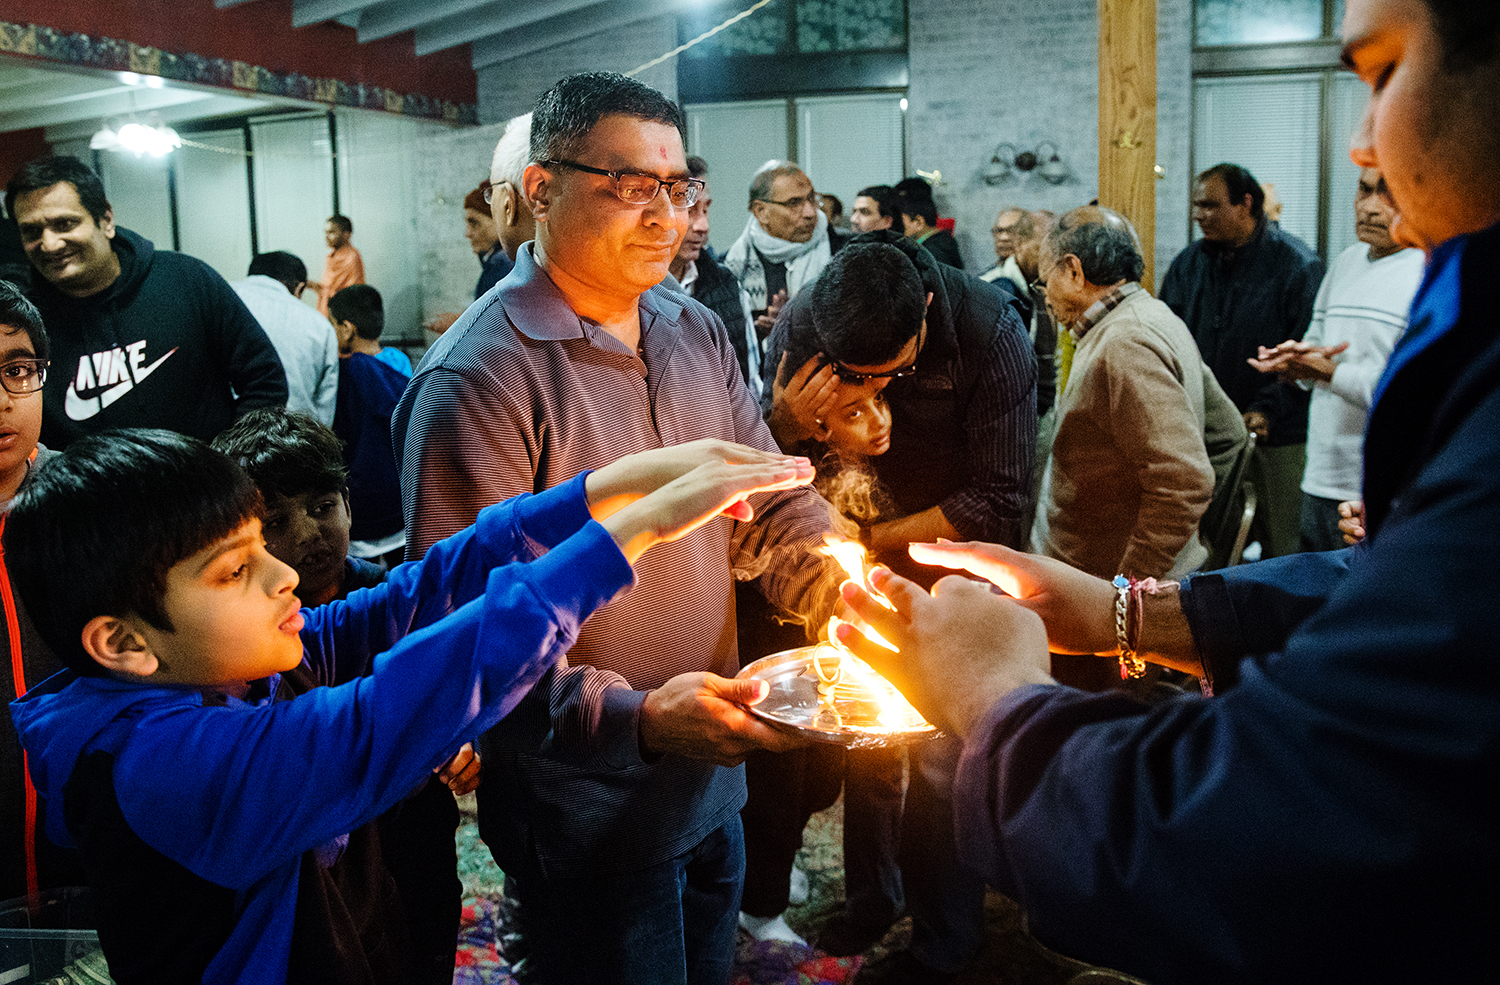 Haresh Gajera carries a tray of burning wicks during the arti prayer at the conclusion of worship Sunday, Feb. 17, 2019. The tray is passed around to allow members to hover their down-turned hands over the flame and then touch them to their eyes and head to convey the purificatory blessing, previously conveyed from the Deities to the flame, to the devotee. [Ted Schurter/The State Journal-Register]